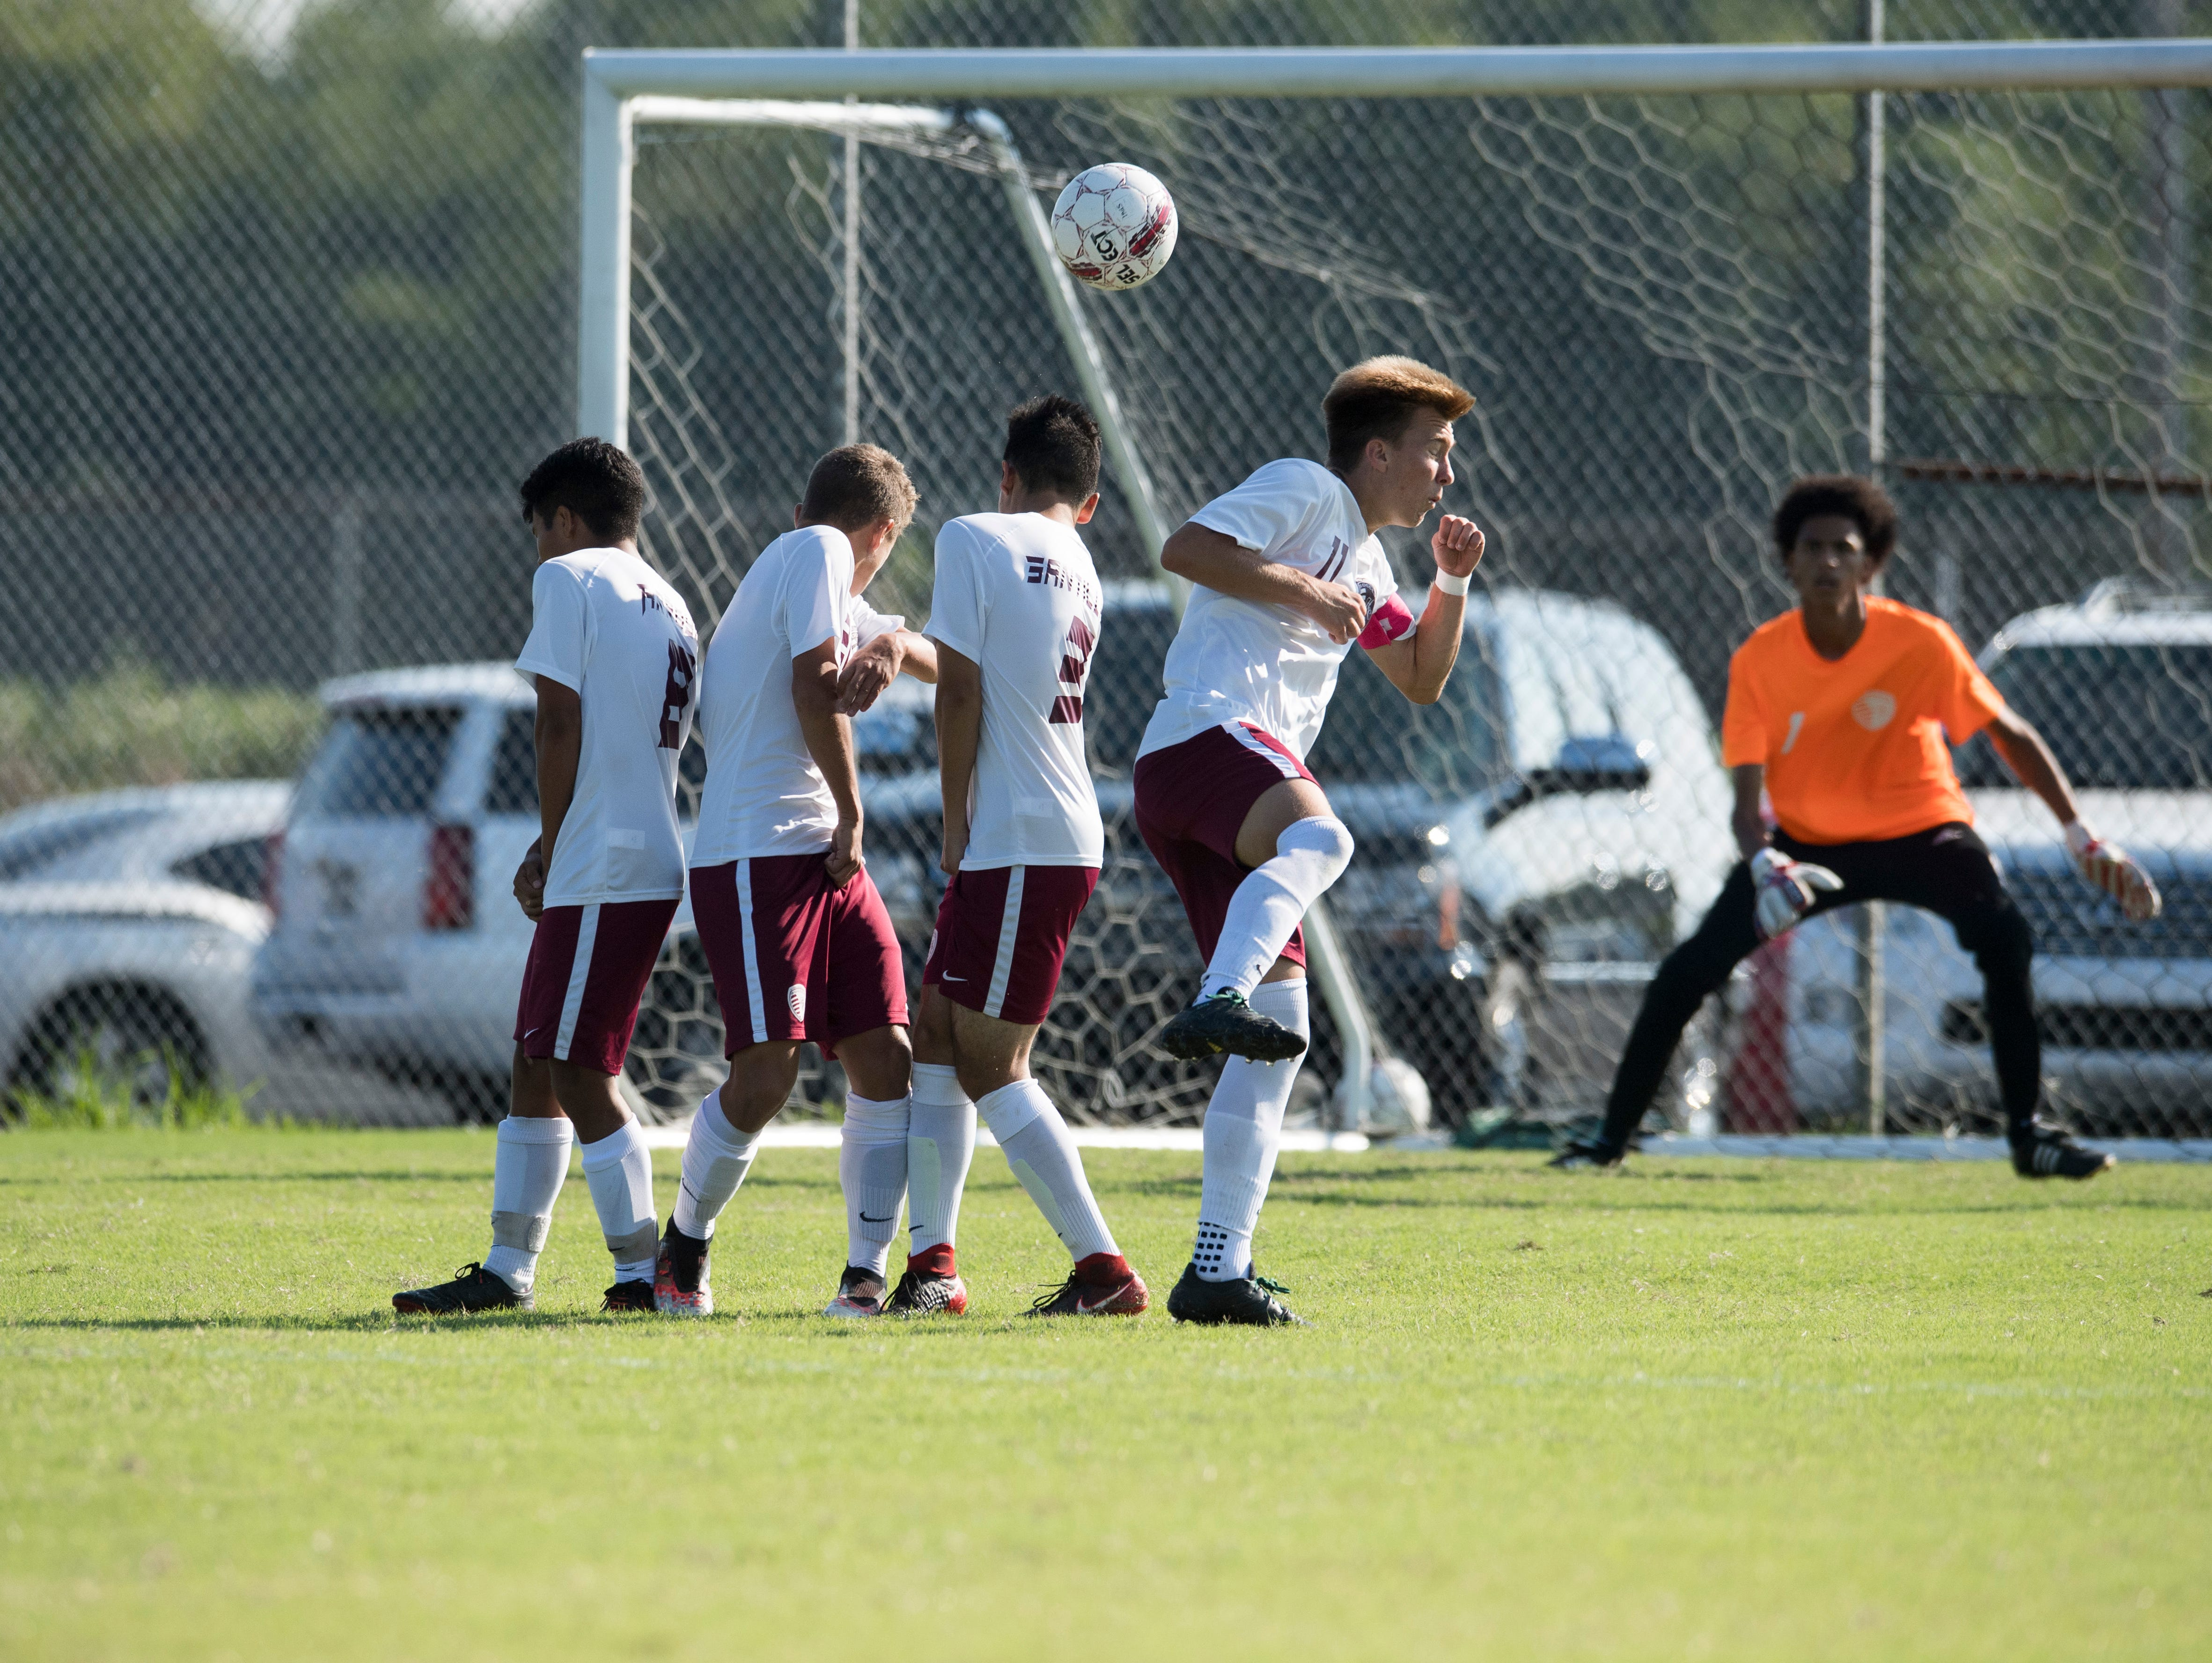 A free kick skims past the Henderson County Colonels  wall during the first half against the Elizabethtown Panthers at Colonel Field in Henderson, Ky., Saturday, Sept. 15, 2018.